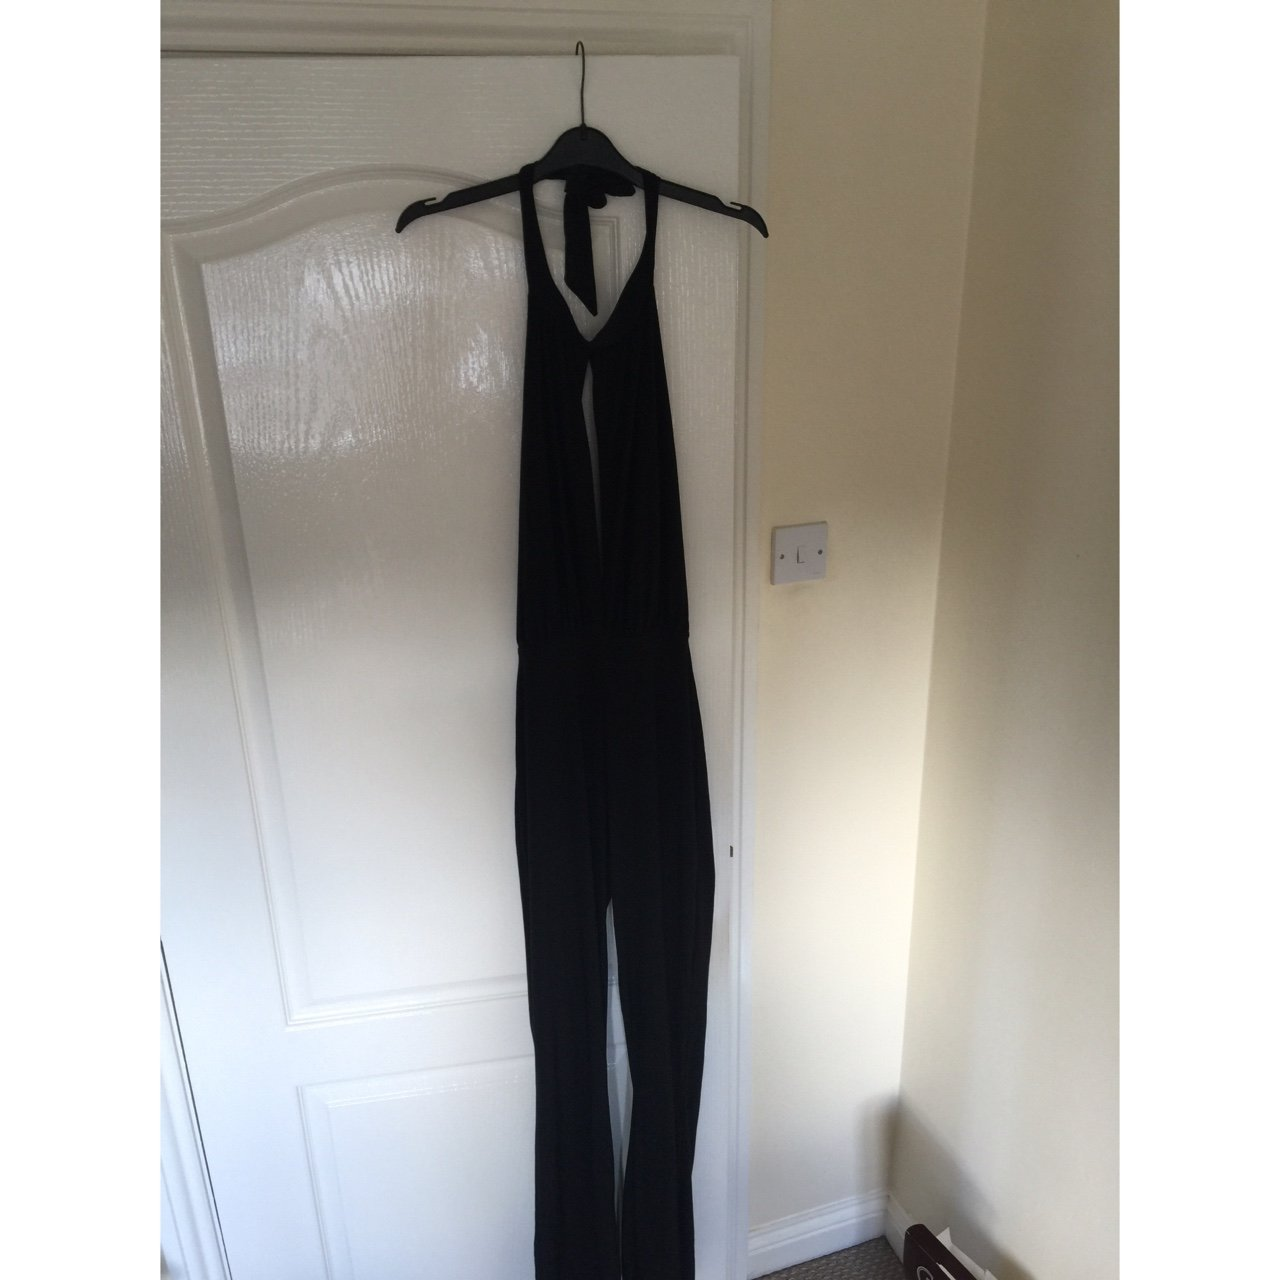 aa208e35220e Size 8 missguided backless jumpsuit with a keyhole opening - Depop